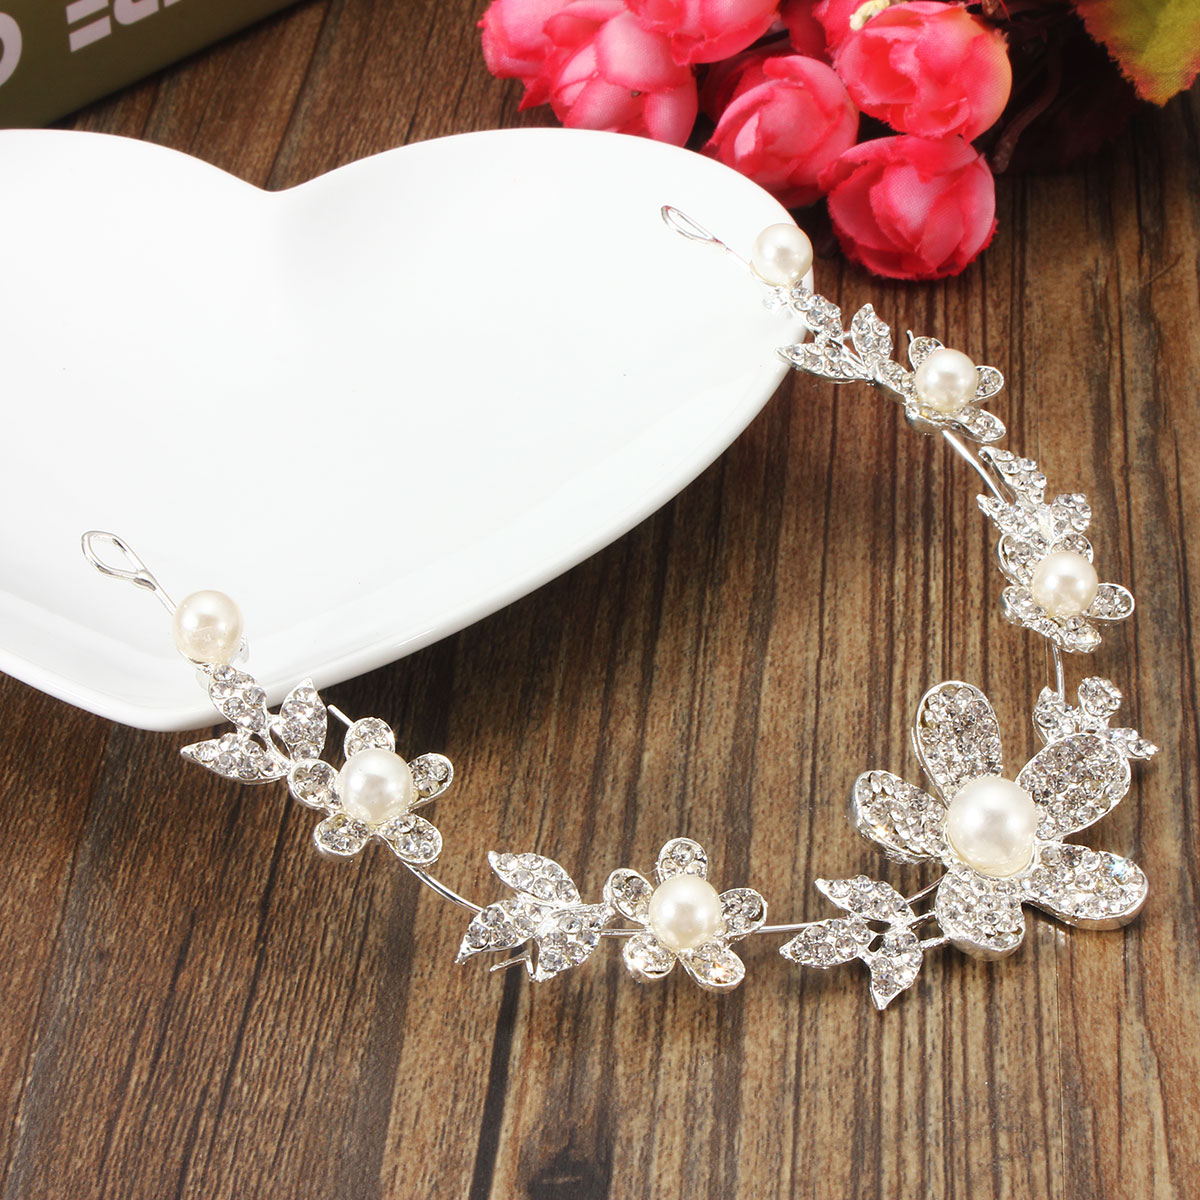 Bride Flower Faux Pearl Rhinestone Diamond Headpiece Wedding Bridal Hair Chain Accessories